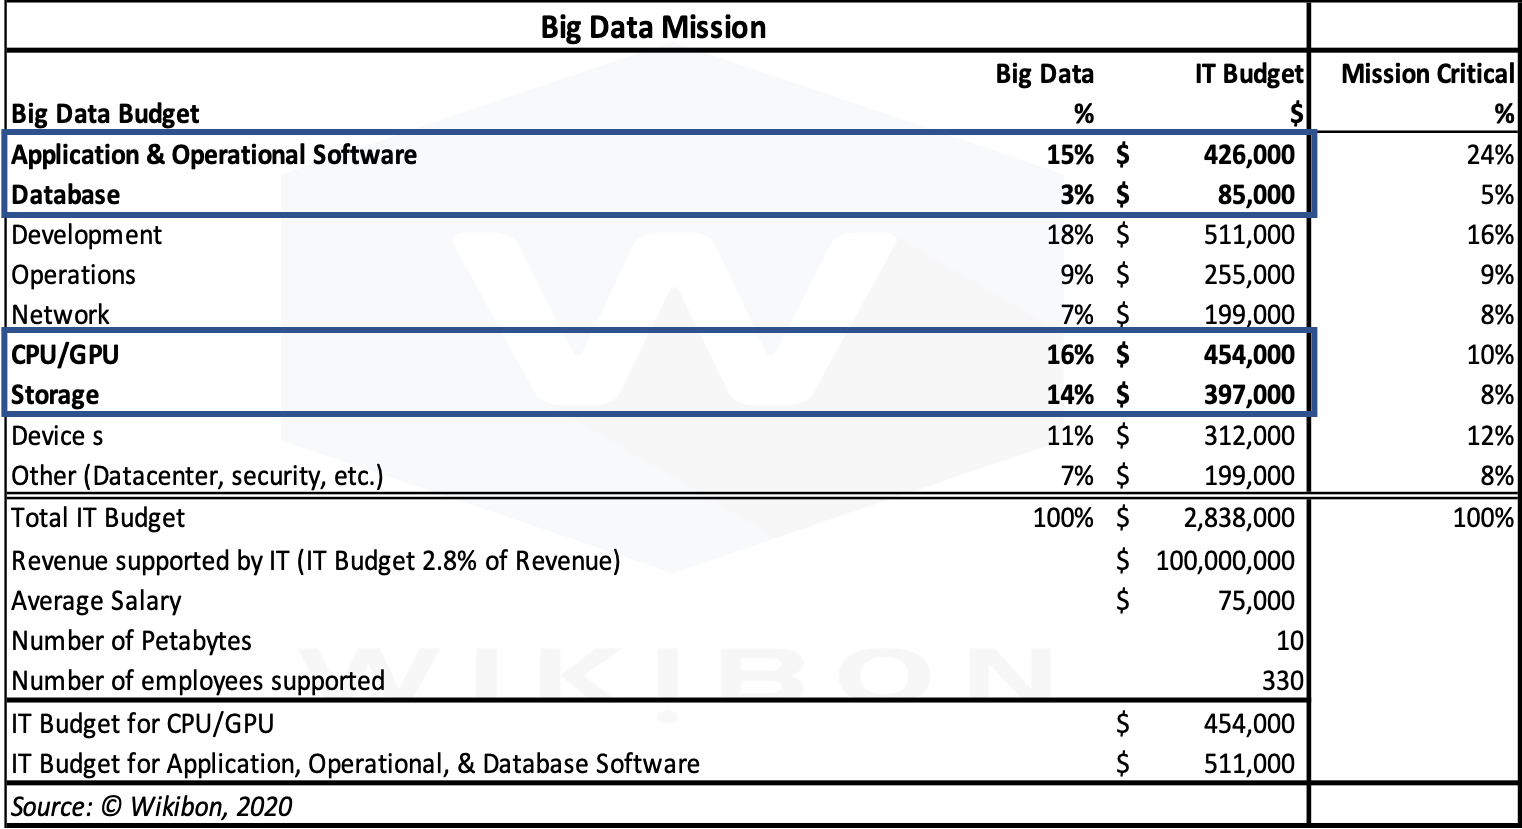 Big Data Mission